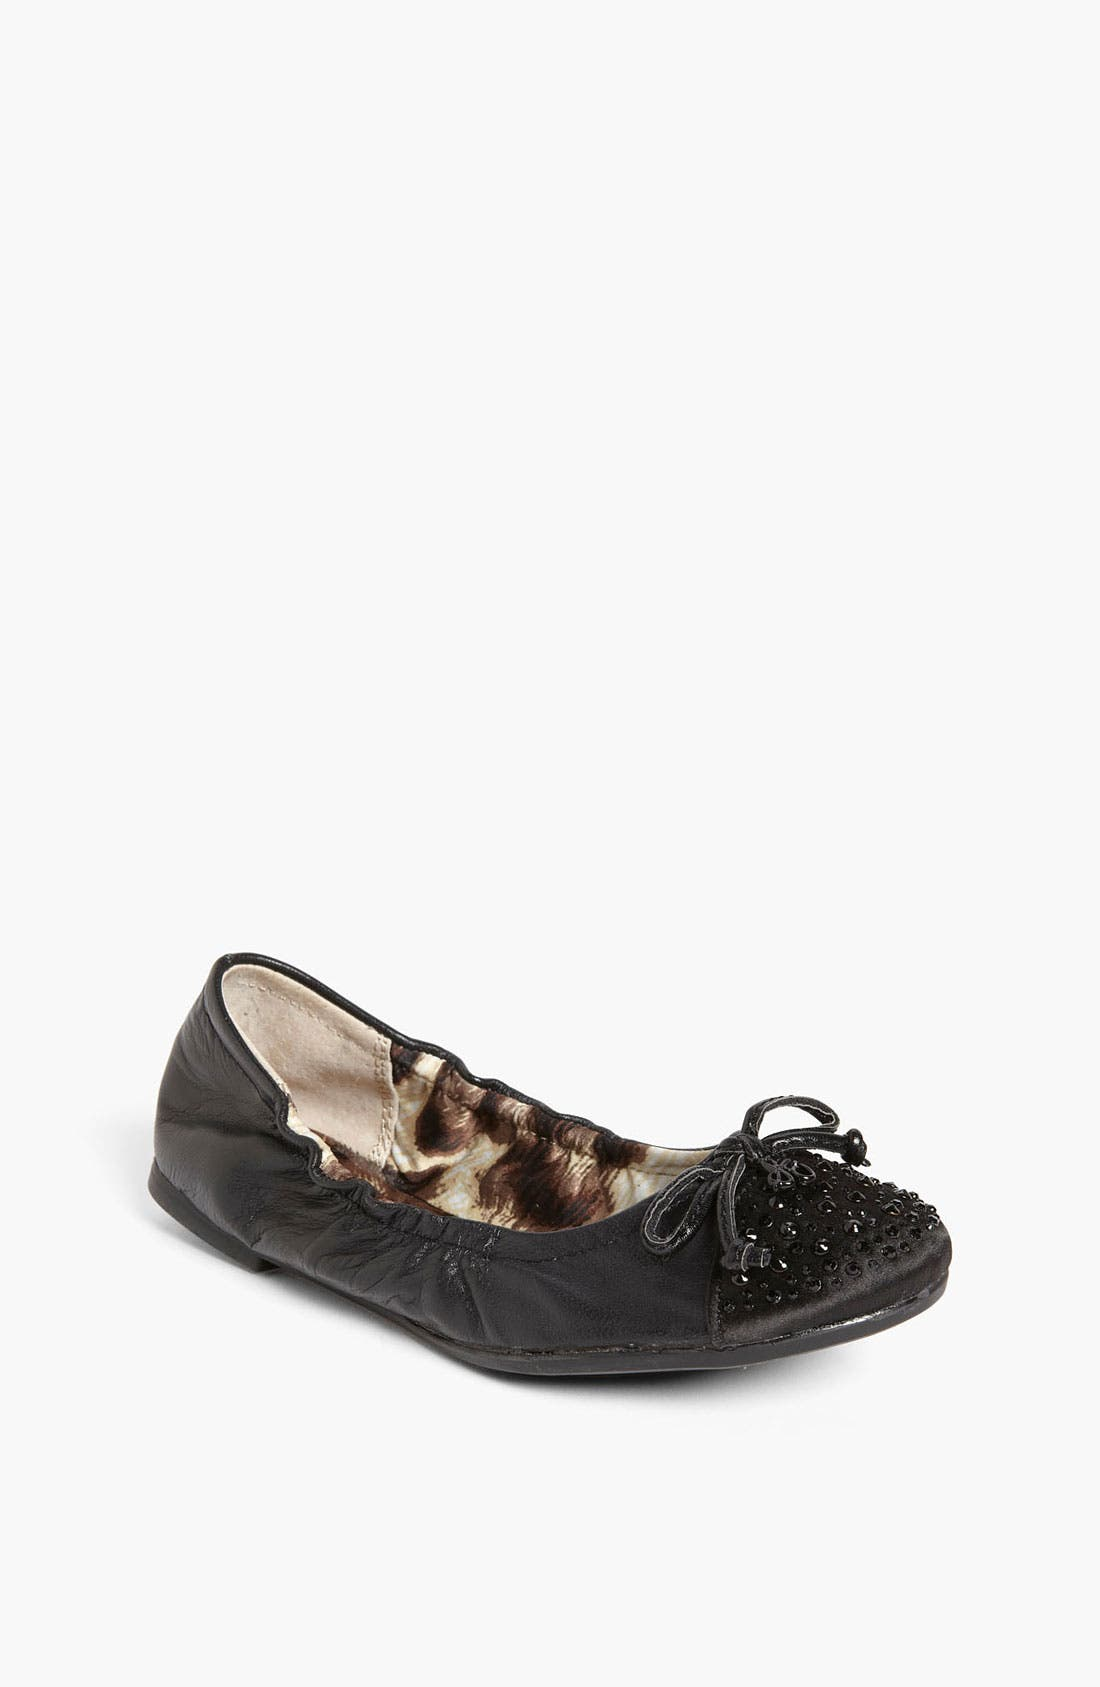 Alternate Image 1 Selected - Sam Edelman 'Beatrix' Flat (Toddler, Little Kid & Big Kid)